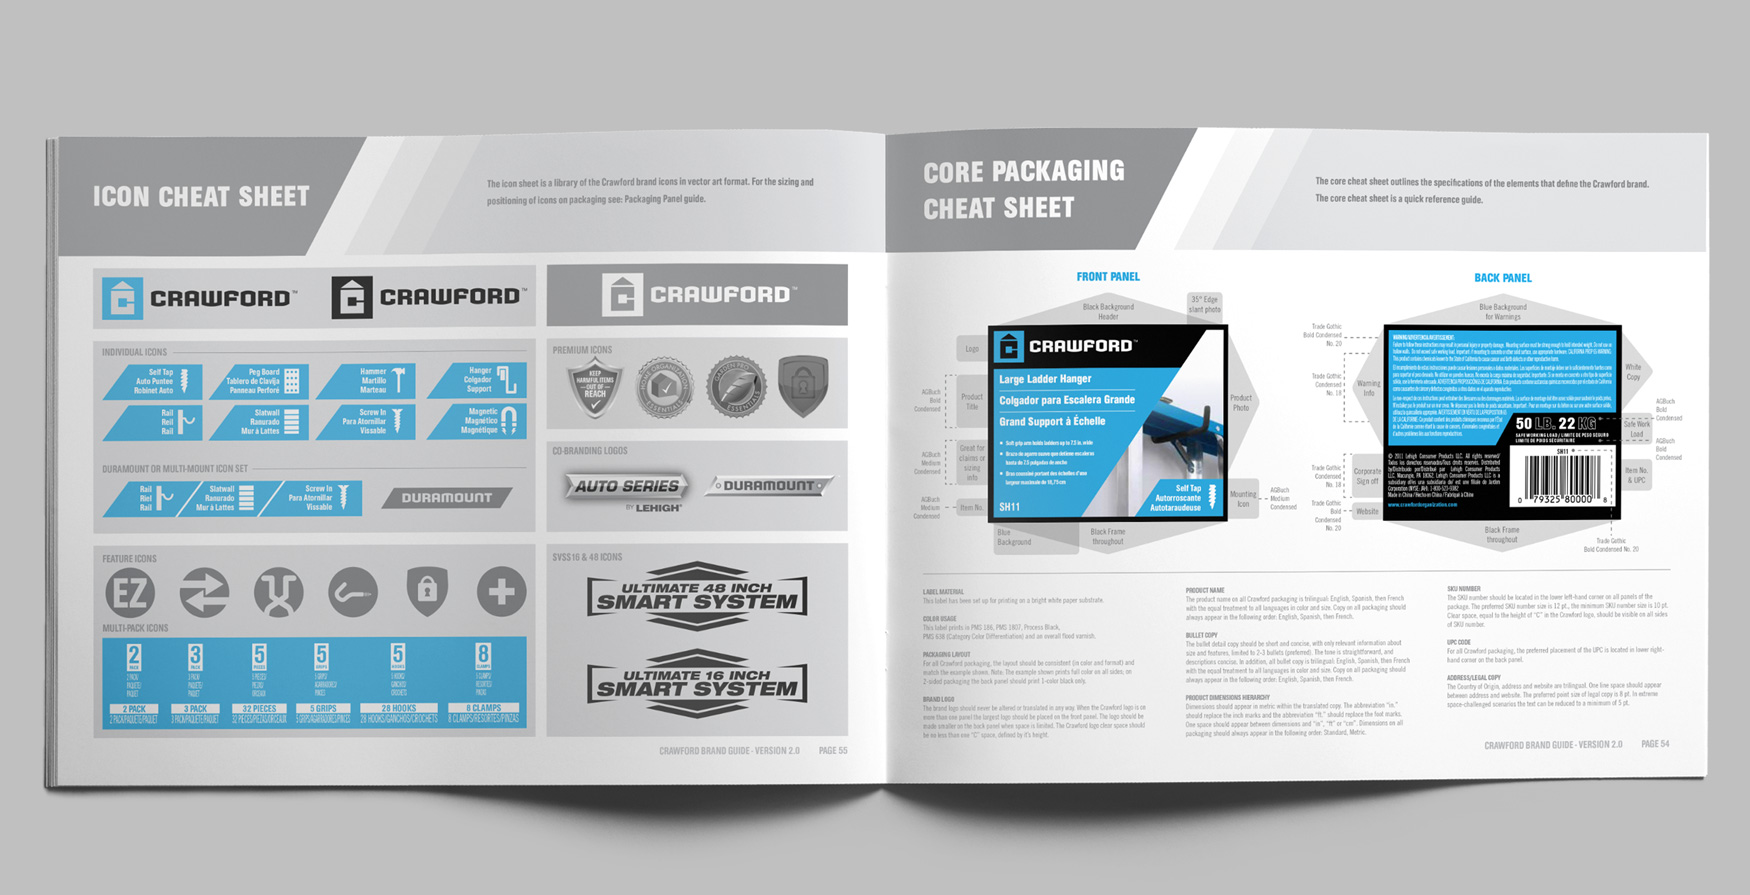 crawford-brand-guide-book-design-interior-page-layout-branding-clean-hardware-industrial-graphic-design-guidelines